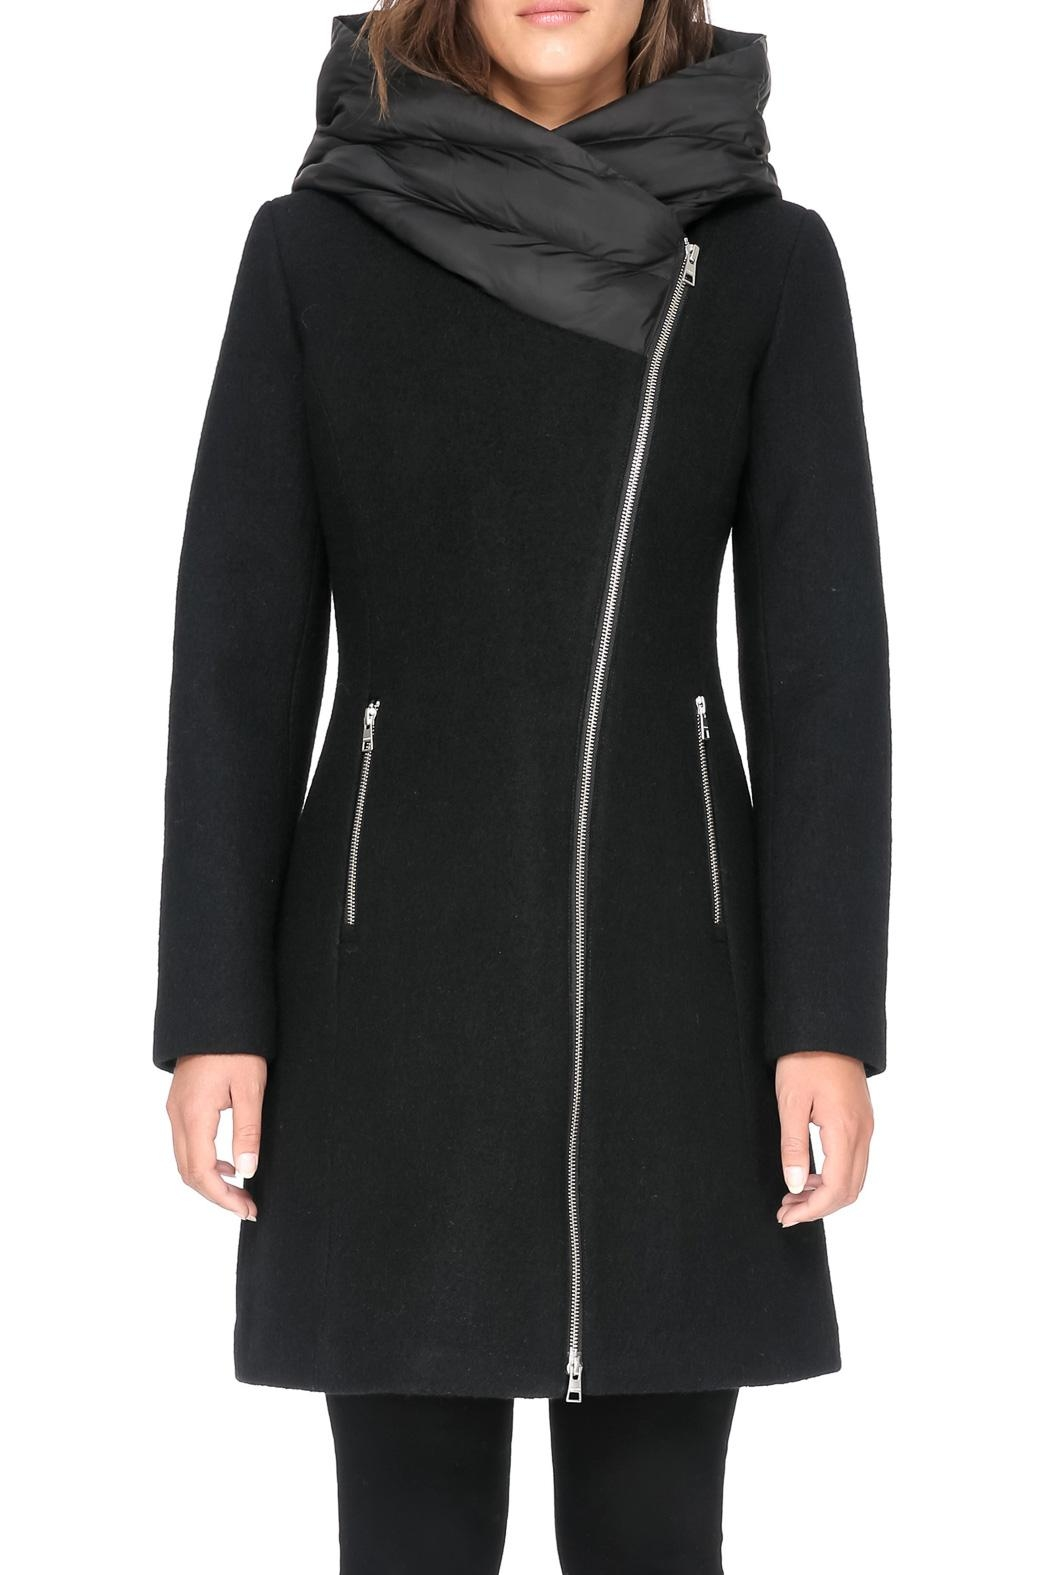 Soia & Kyo Florina Wool Coat - Side Cropped Image